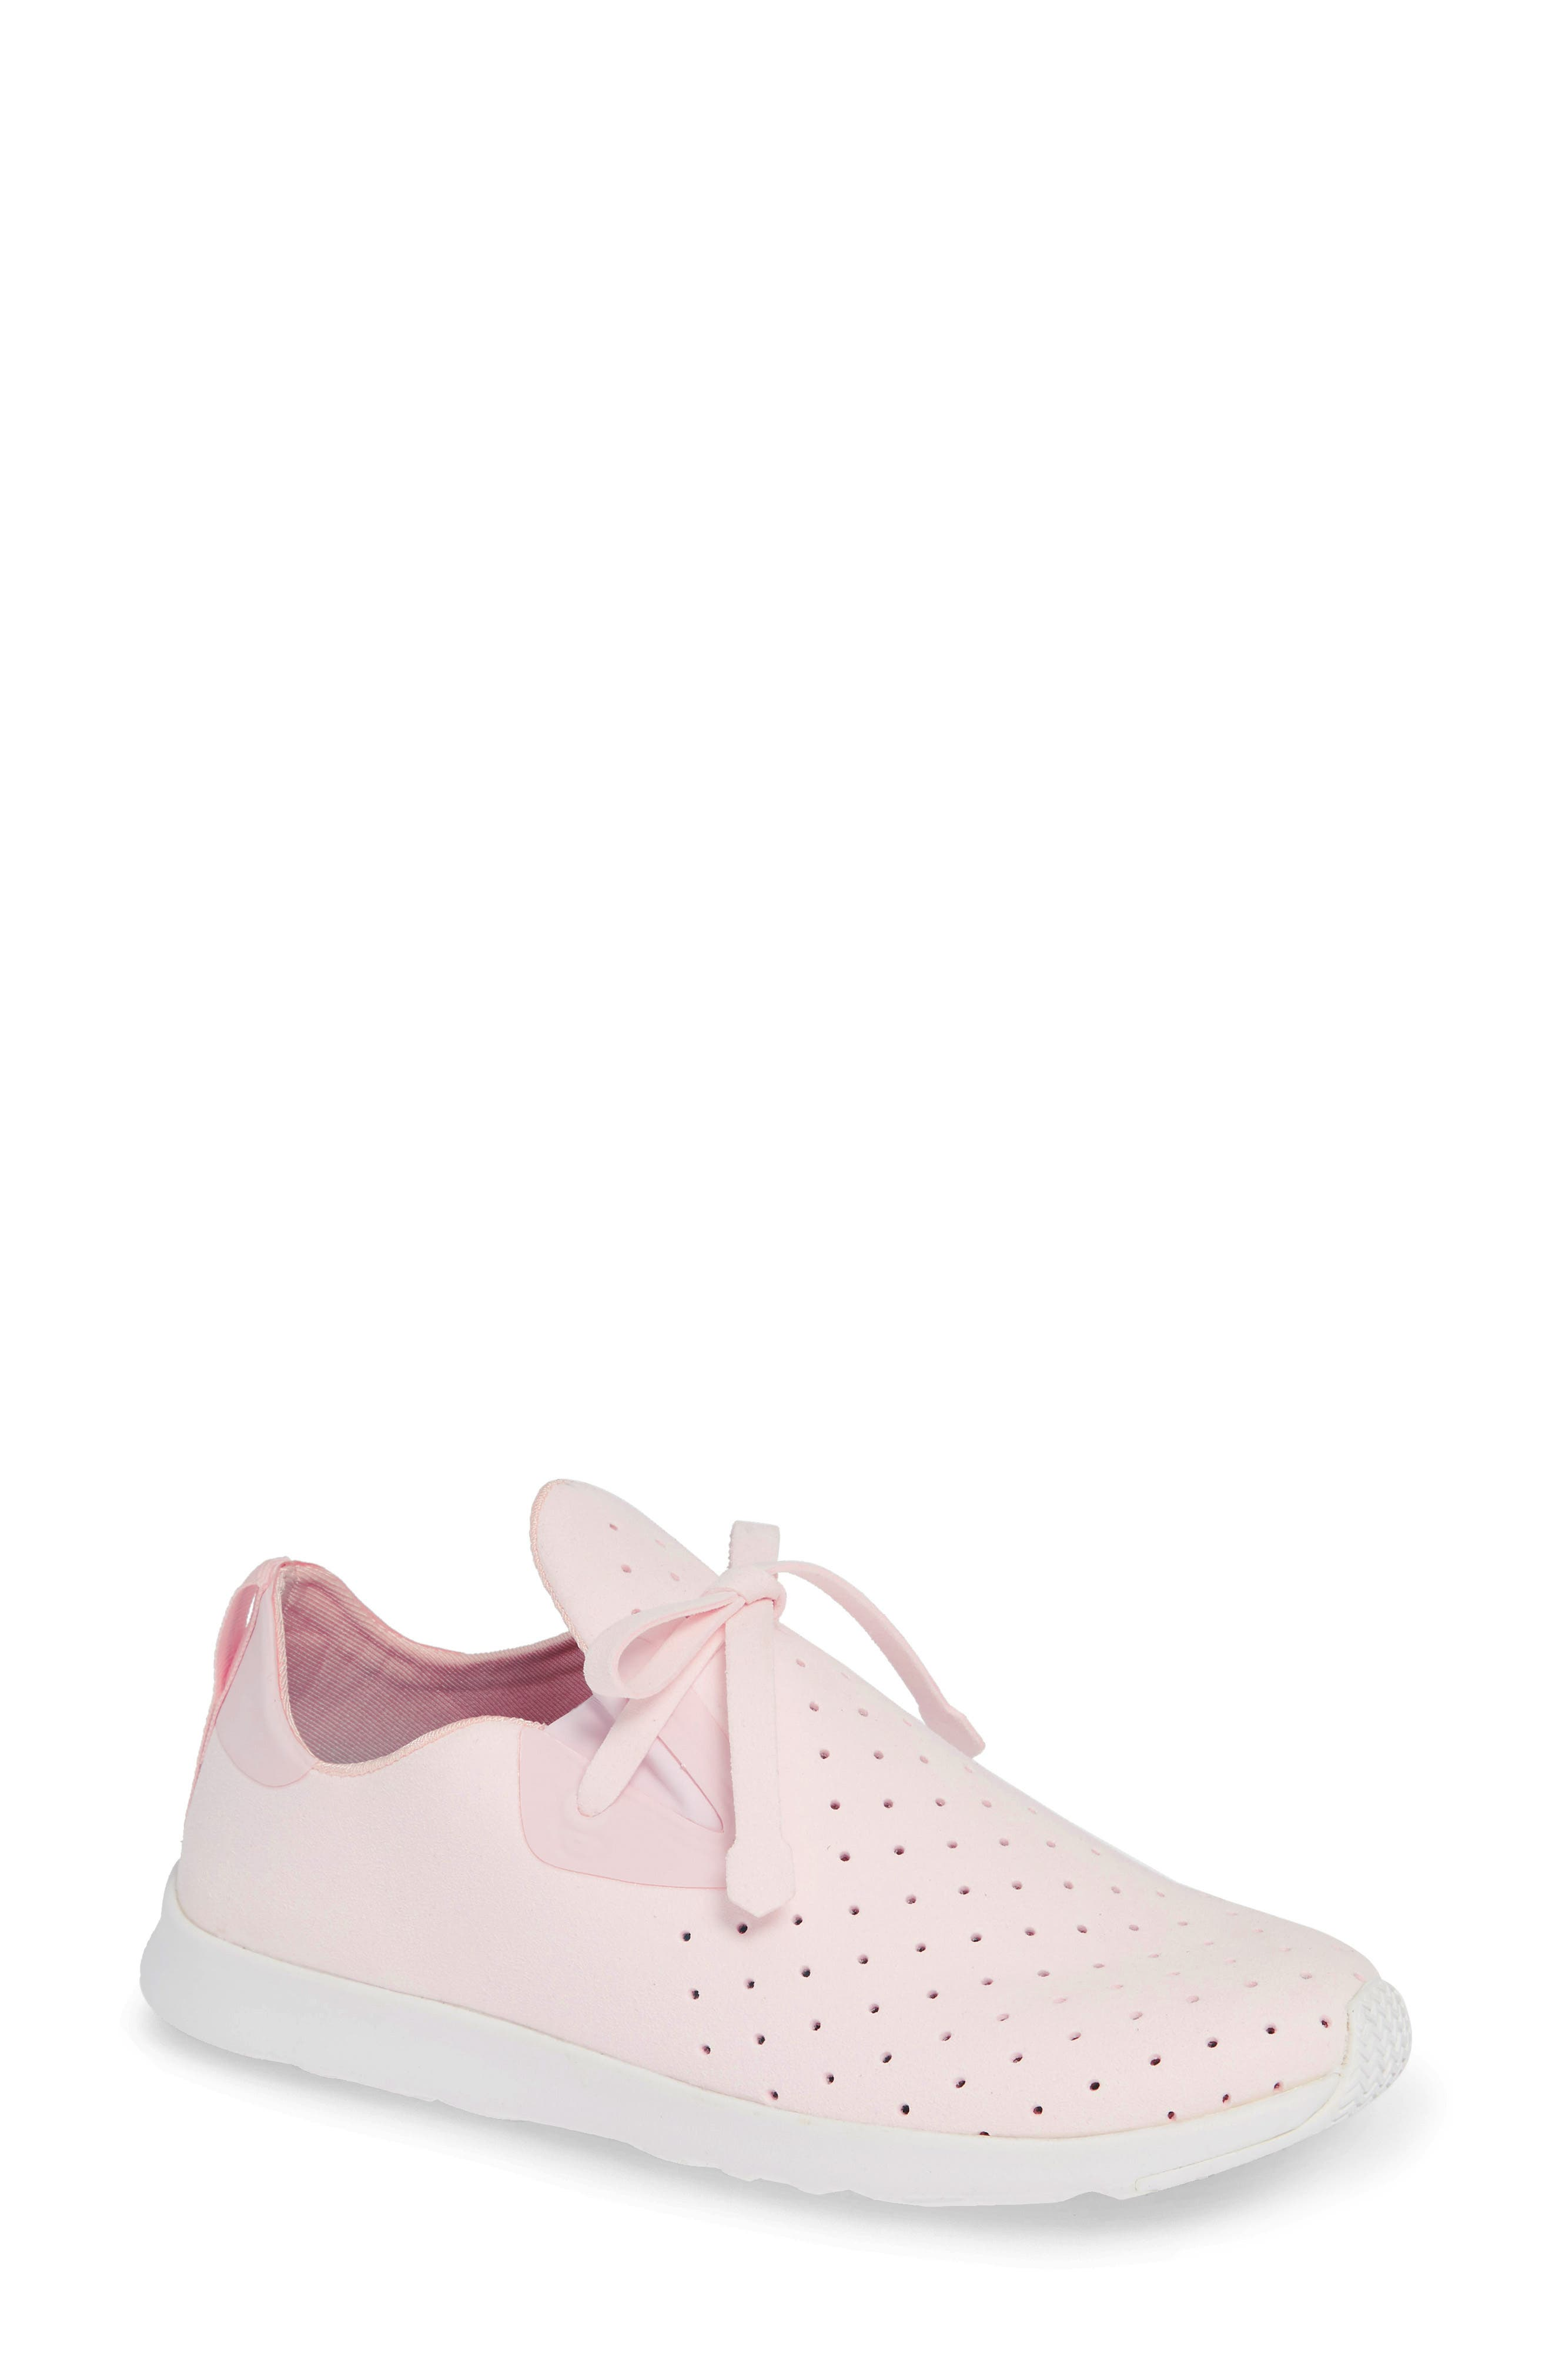 'Apollo' Perforated Sneaker,                             Main thumbnail 1, color,                             650